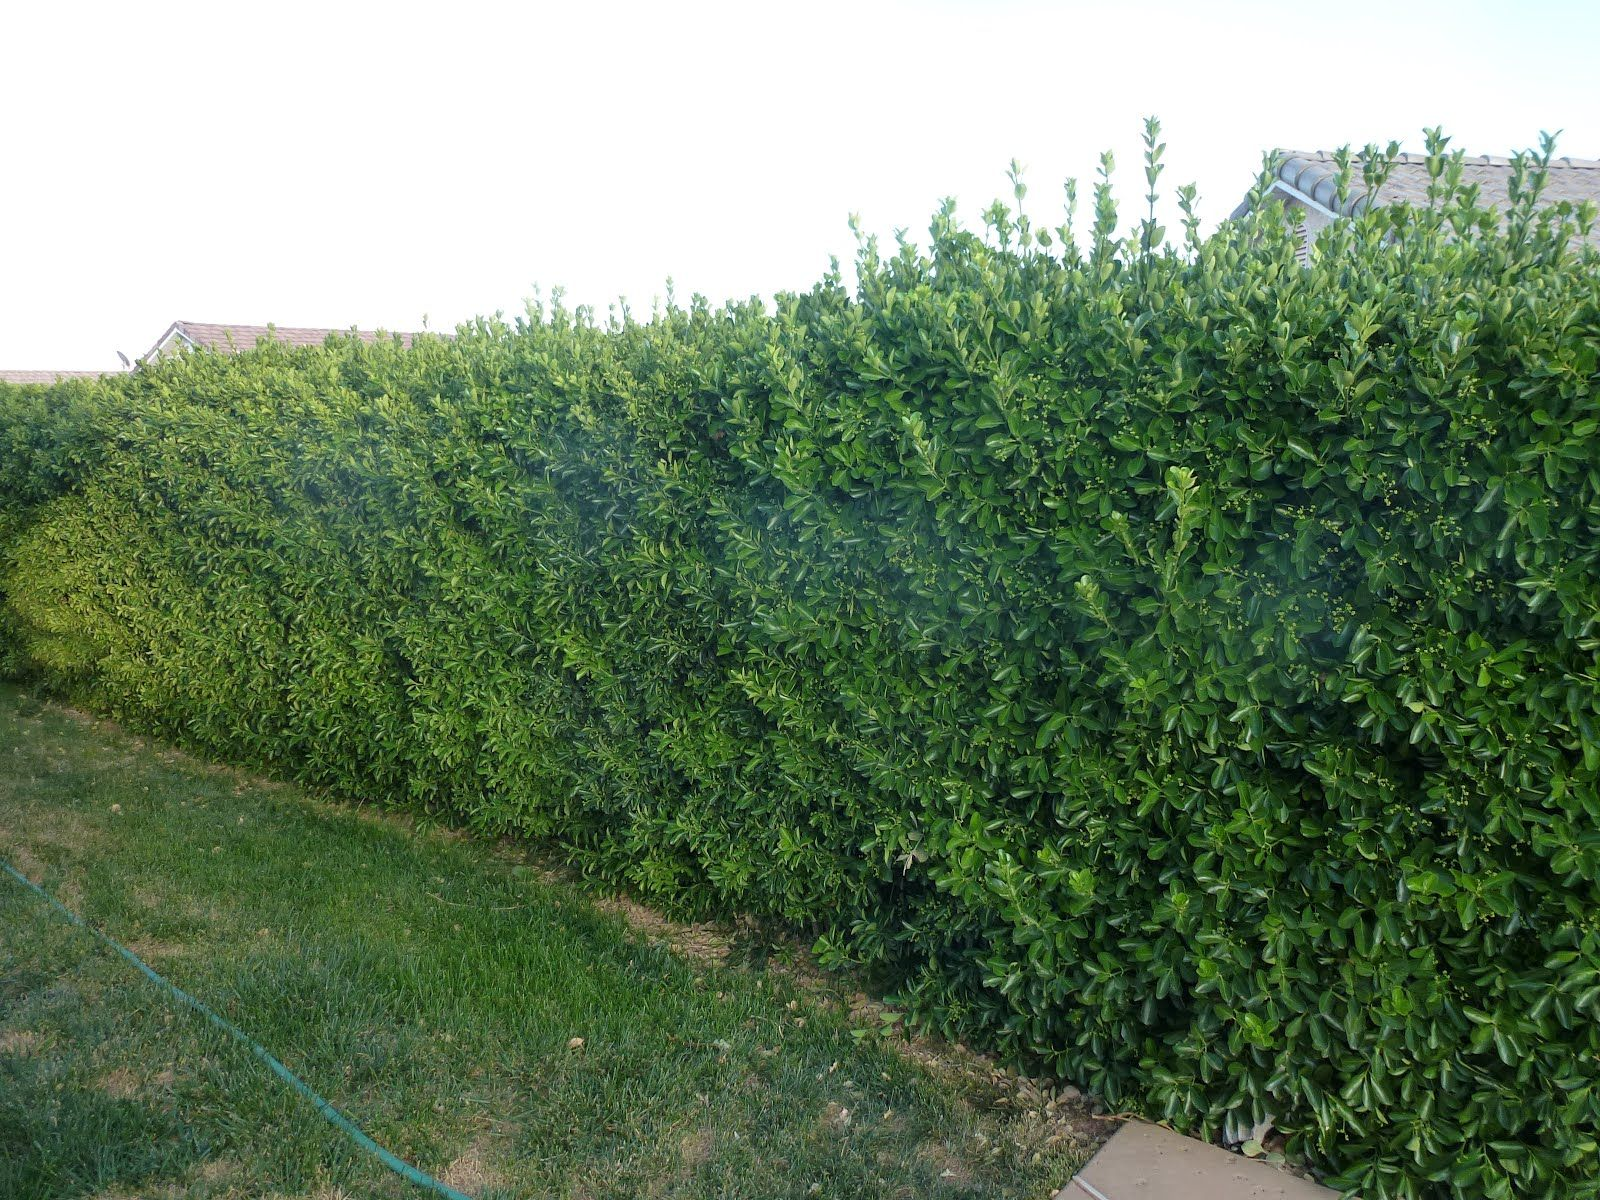 Trees Or Bushes For Privacy Fence Shrubs Are Awesome For